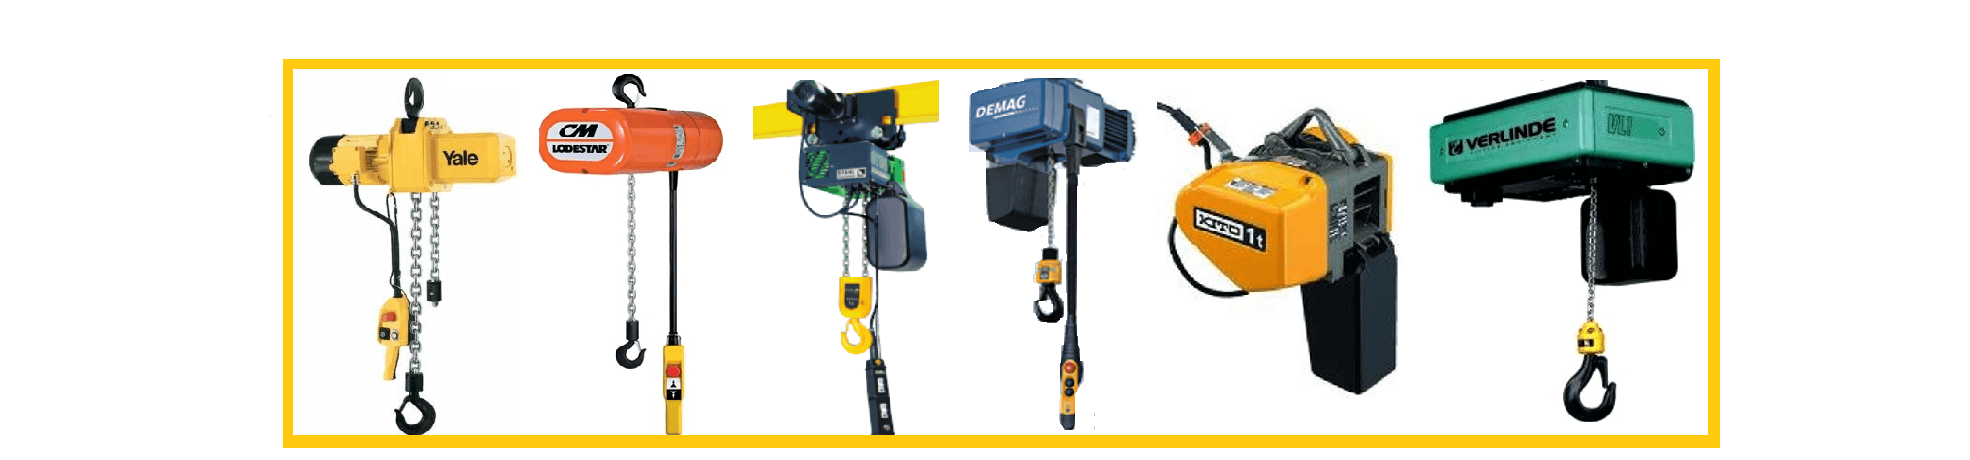 Lifting Hoists Direct Hoist Suppliers Hoisting Devices Stahl Chain Wiring Diagram Electric